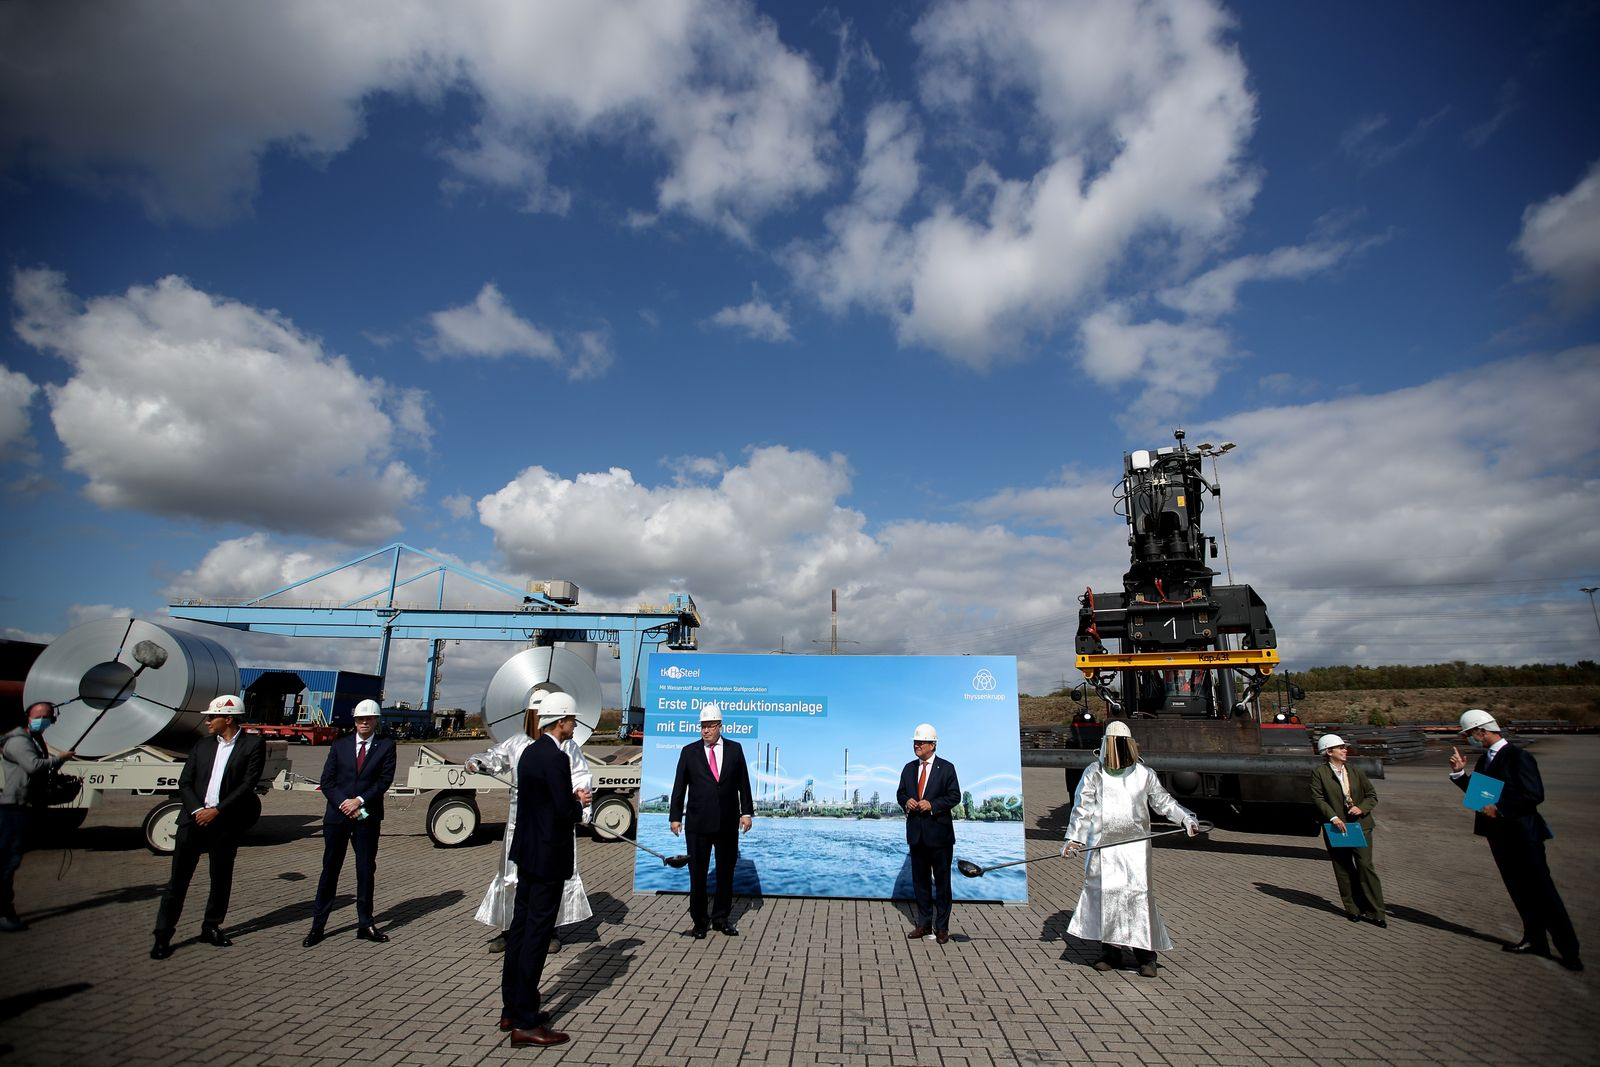 German Minister of Economy and Energy Altmaier visits ThyssenKrupp Steel, Duisburg, Germany - 28 Aug 2020